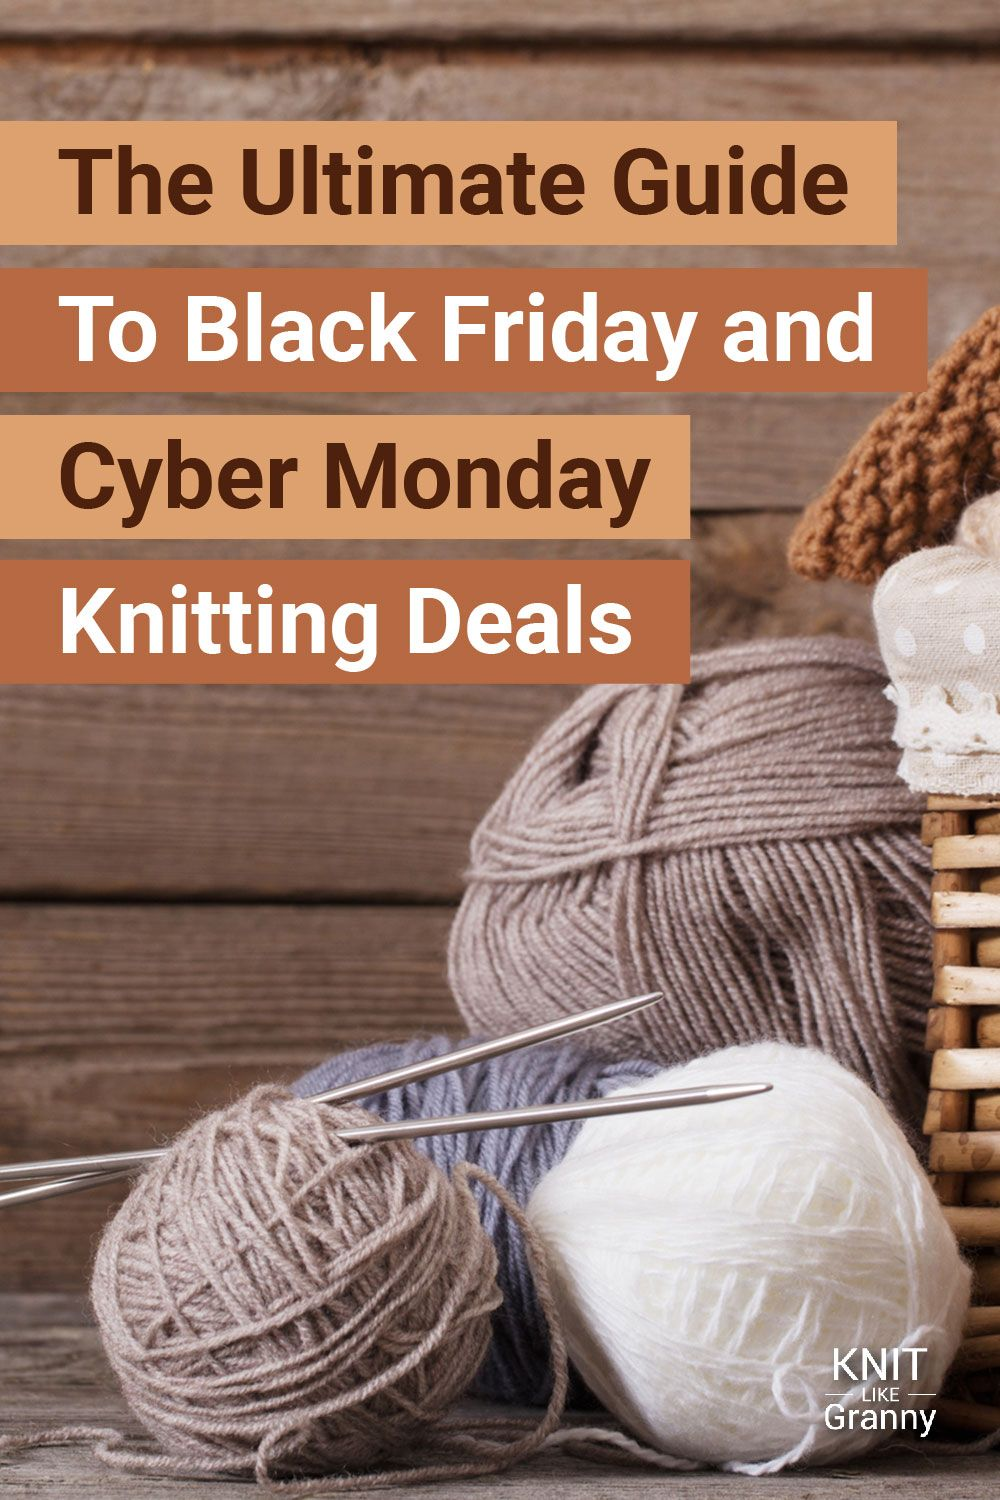 Black Friday Yarn Sale Ultimate Guide To Black Friday And Cyber Monday Knitting Sales For 2020 Yarn For Sale Knitting Knitwear Design